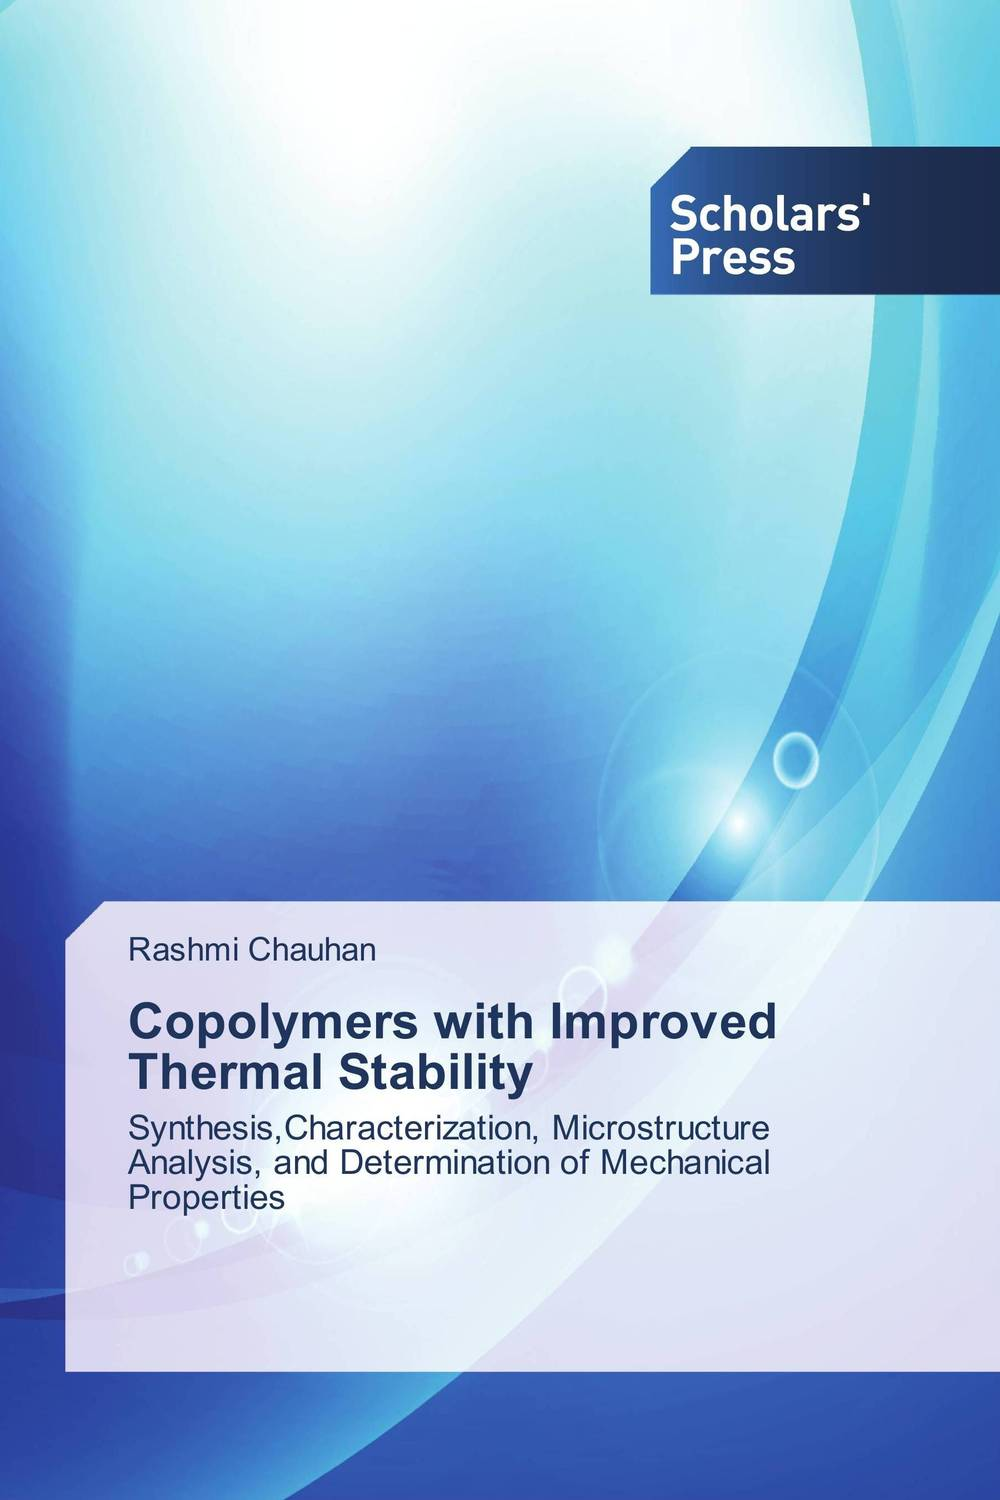 Copolymers with Improved Thermal Stability rakesh kumar tiwari and rajendra prasad ojha conformation and stability of mixed dna triplex